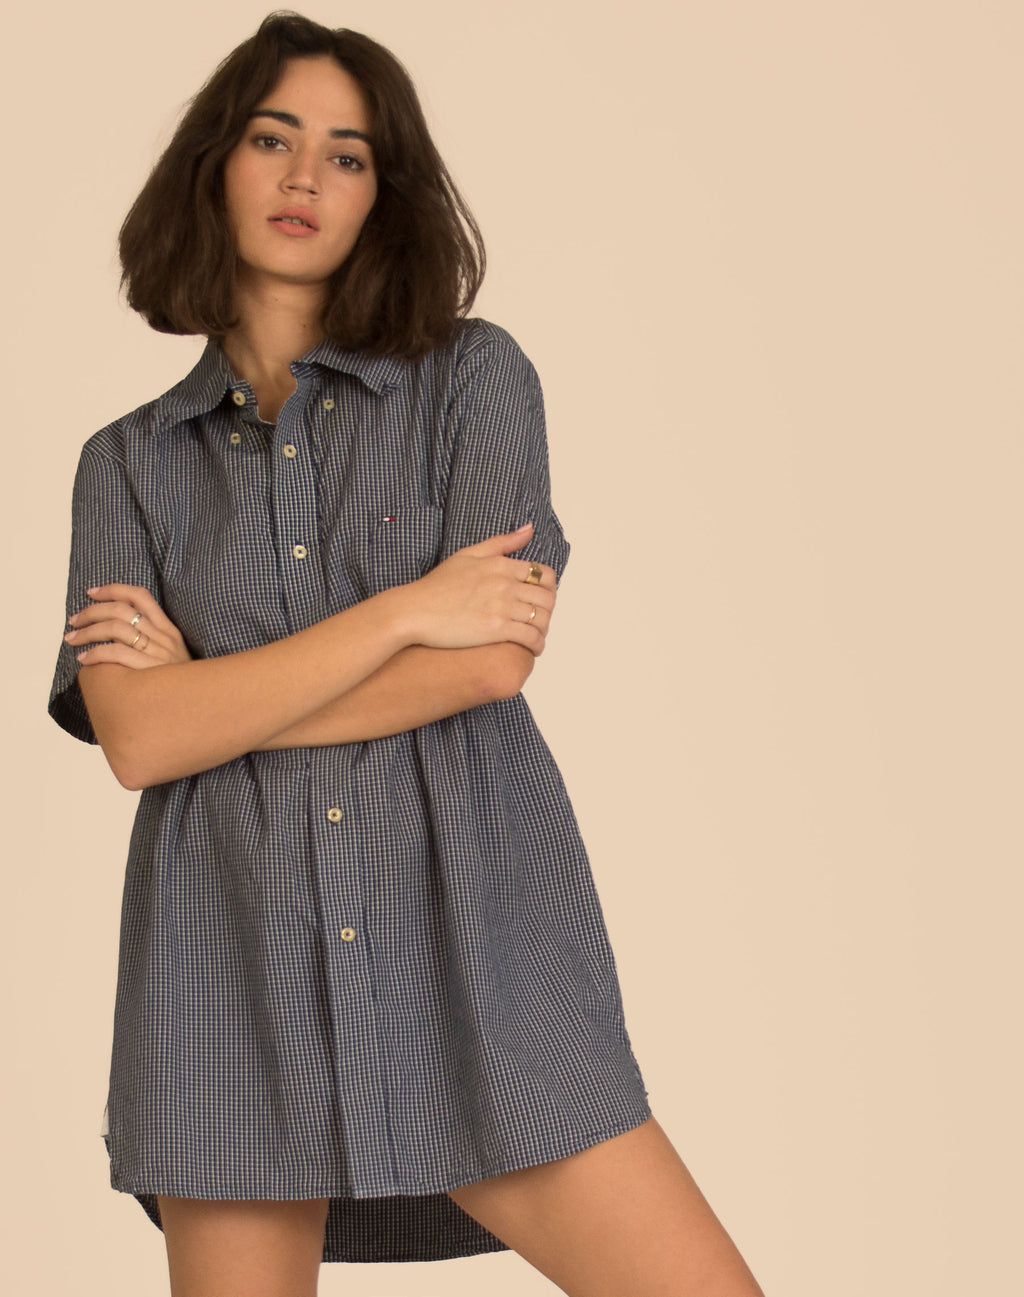 TOMMY HILFIGER NAVY CHECK ROXY SMOCK DRESS